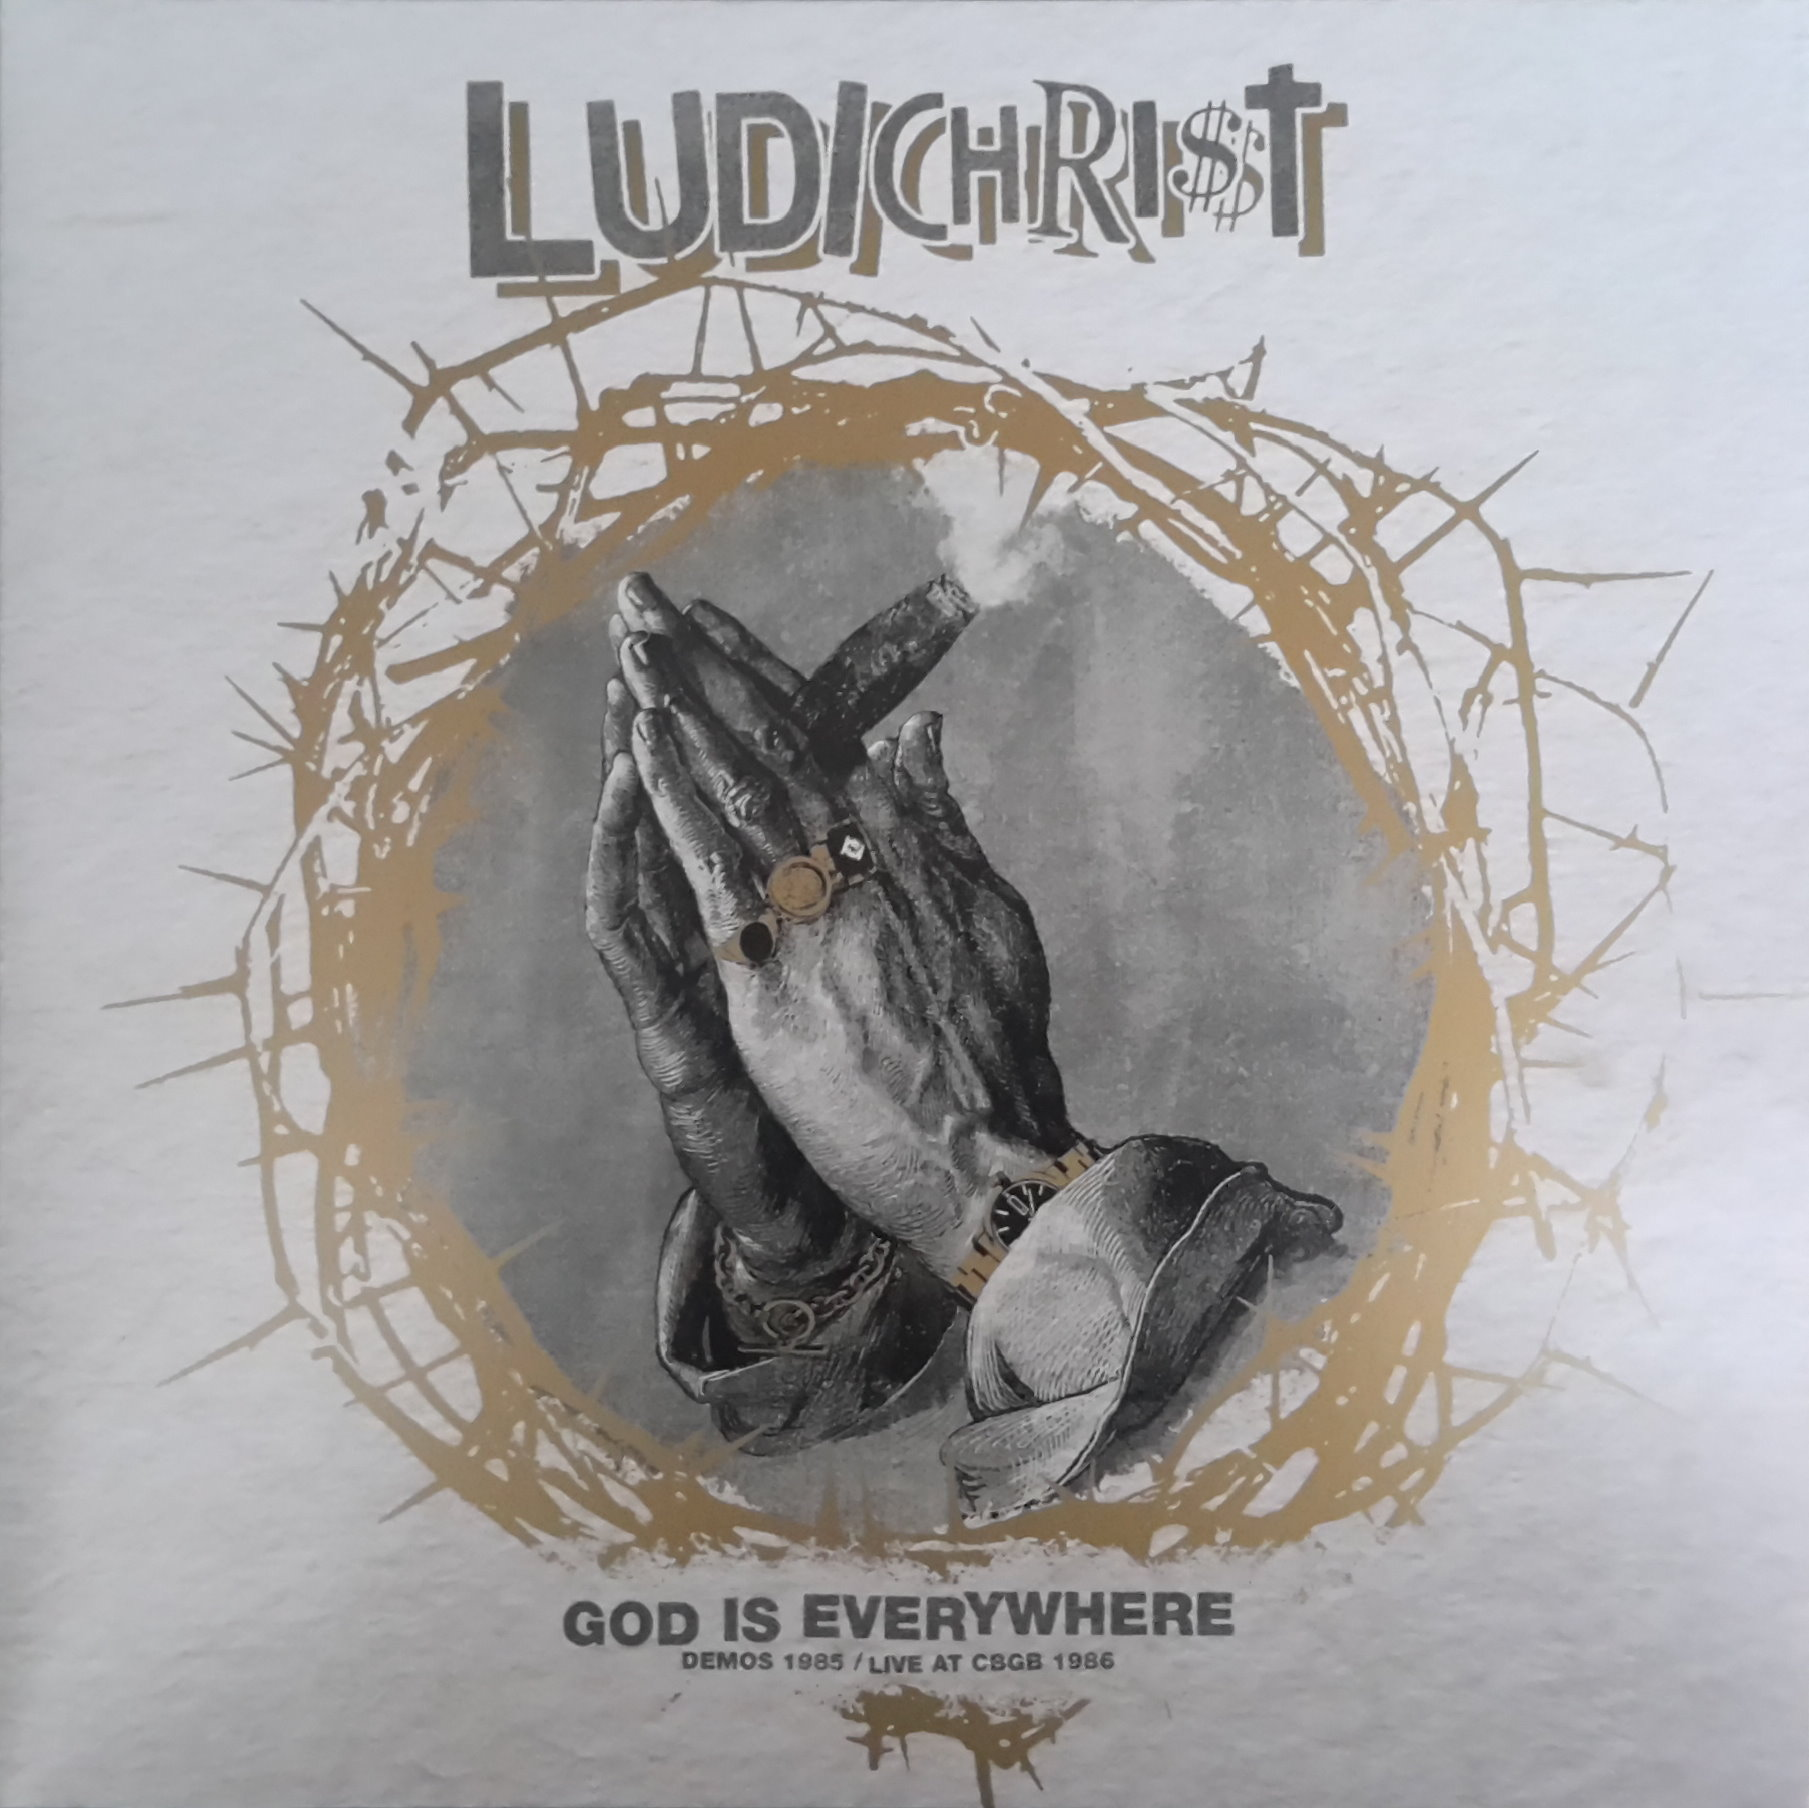 Ludichrist - God Is Everywhere  - Demos 1985 + Live At CBGB 1986 - 2014